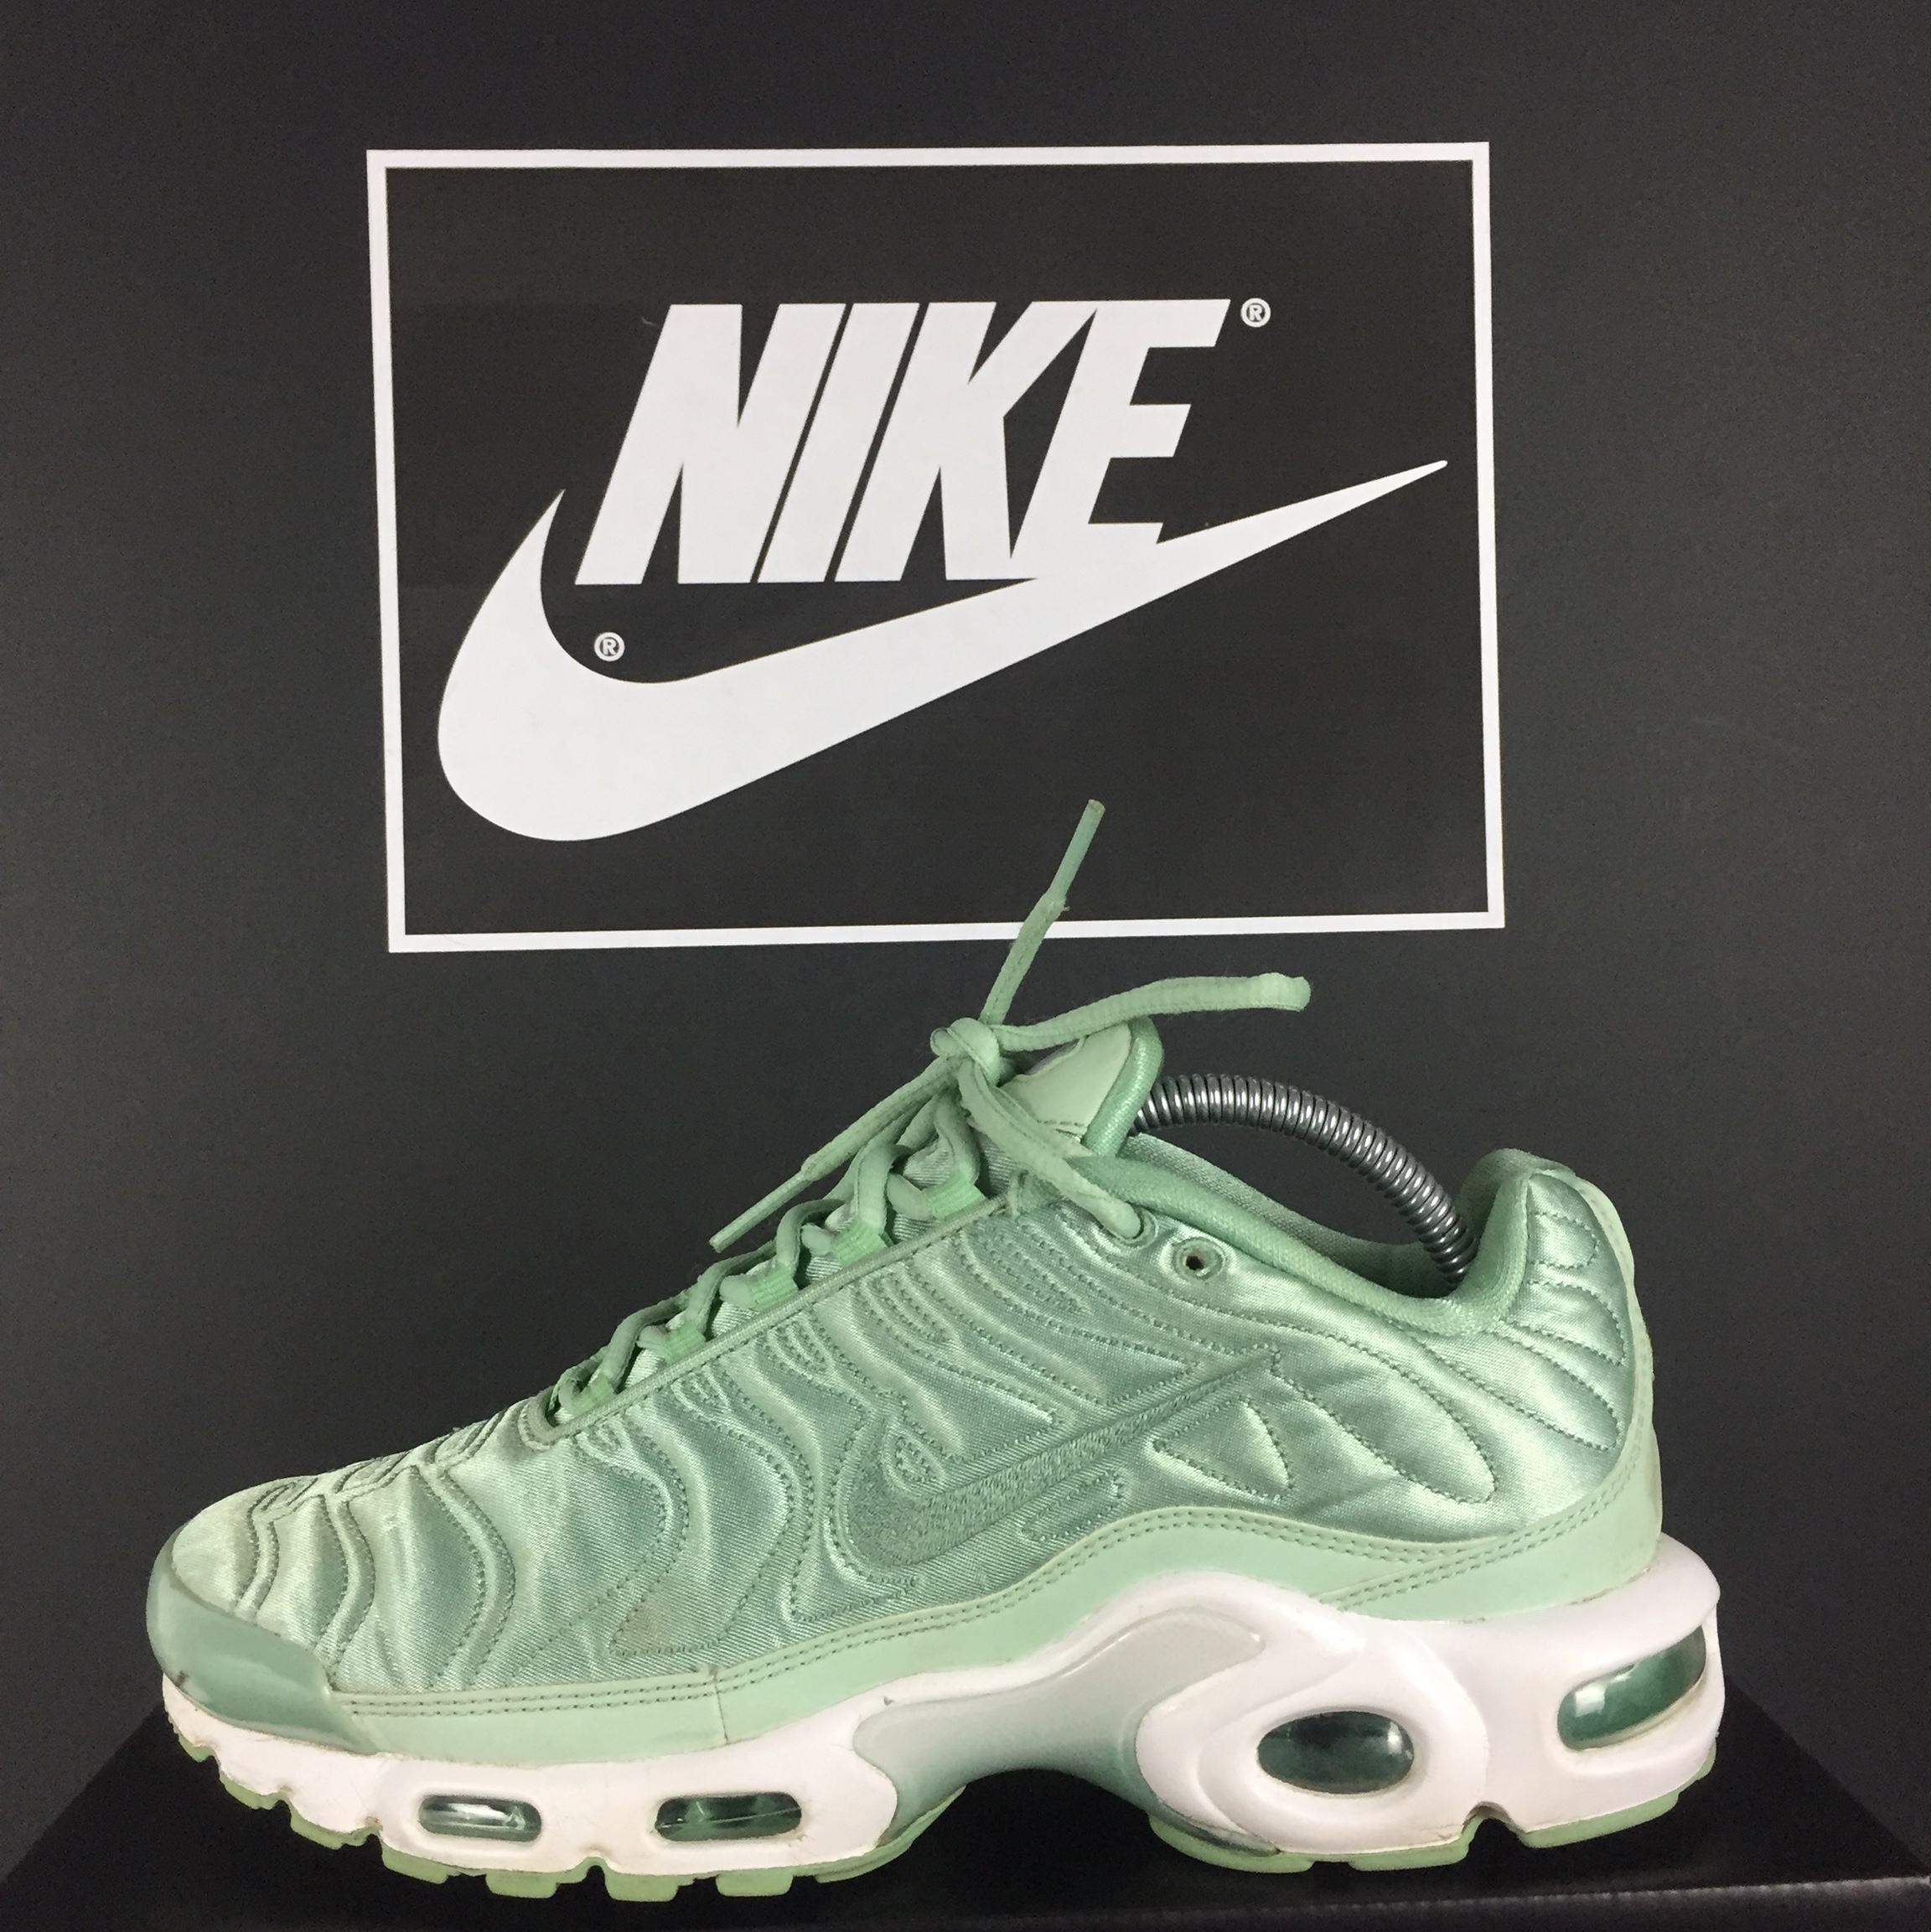 Nike Air Max Tn 95 Hot Sale, UP TO 68% OFF